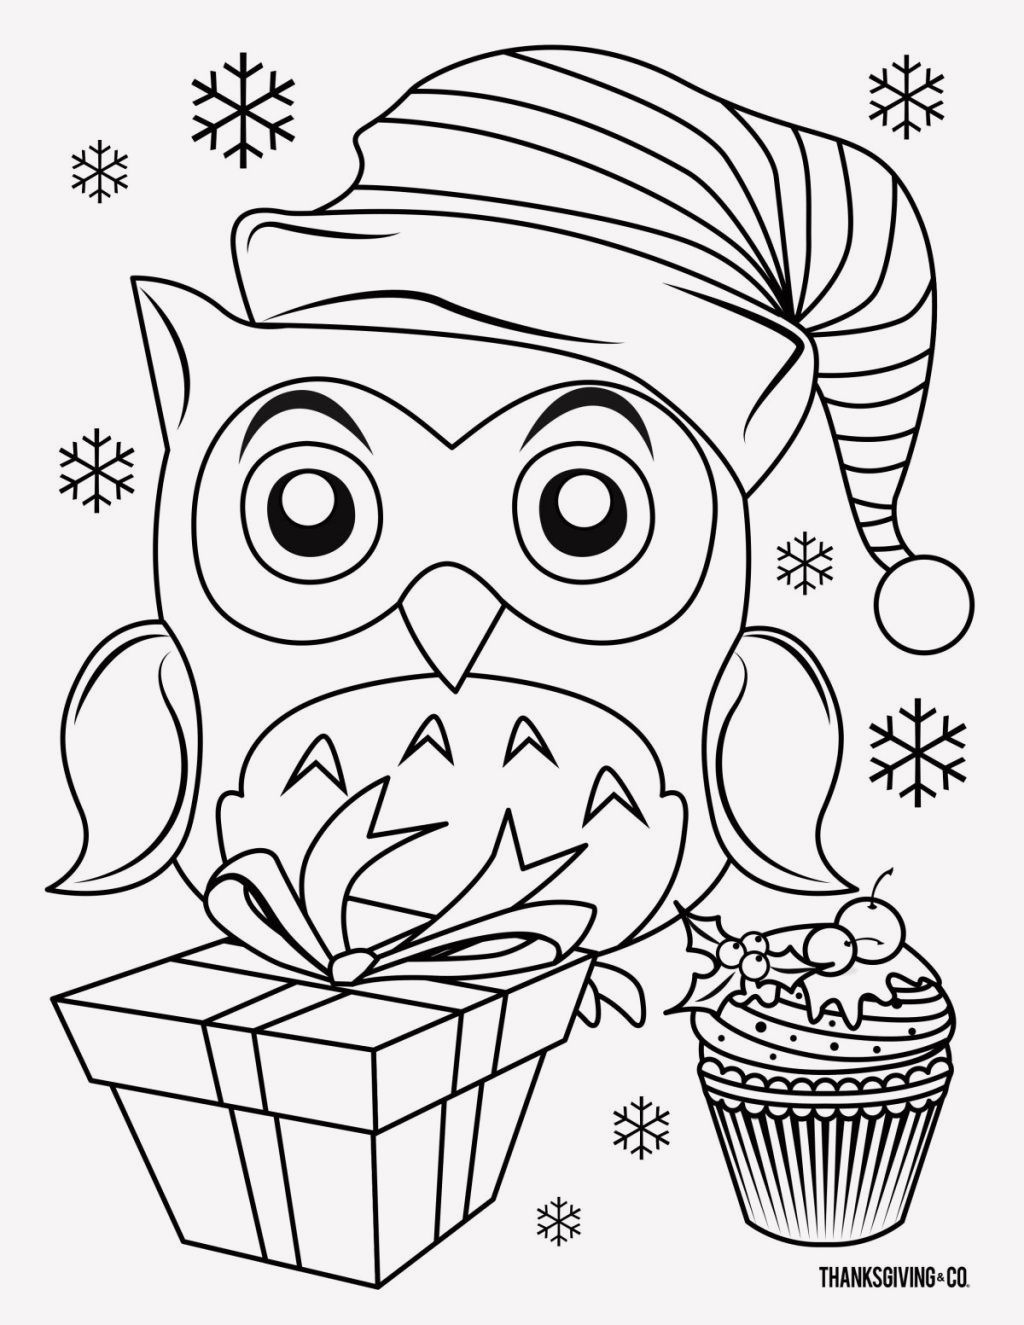 13 Alphabet Coloring Pages Crayola In 2020 Owl Coloring Pages Cute Coloring Pages Free Christmas Coloring Pages